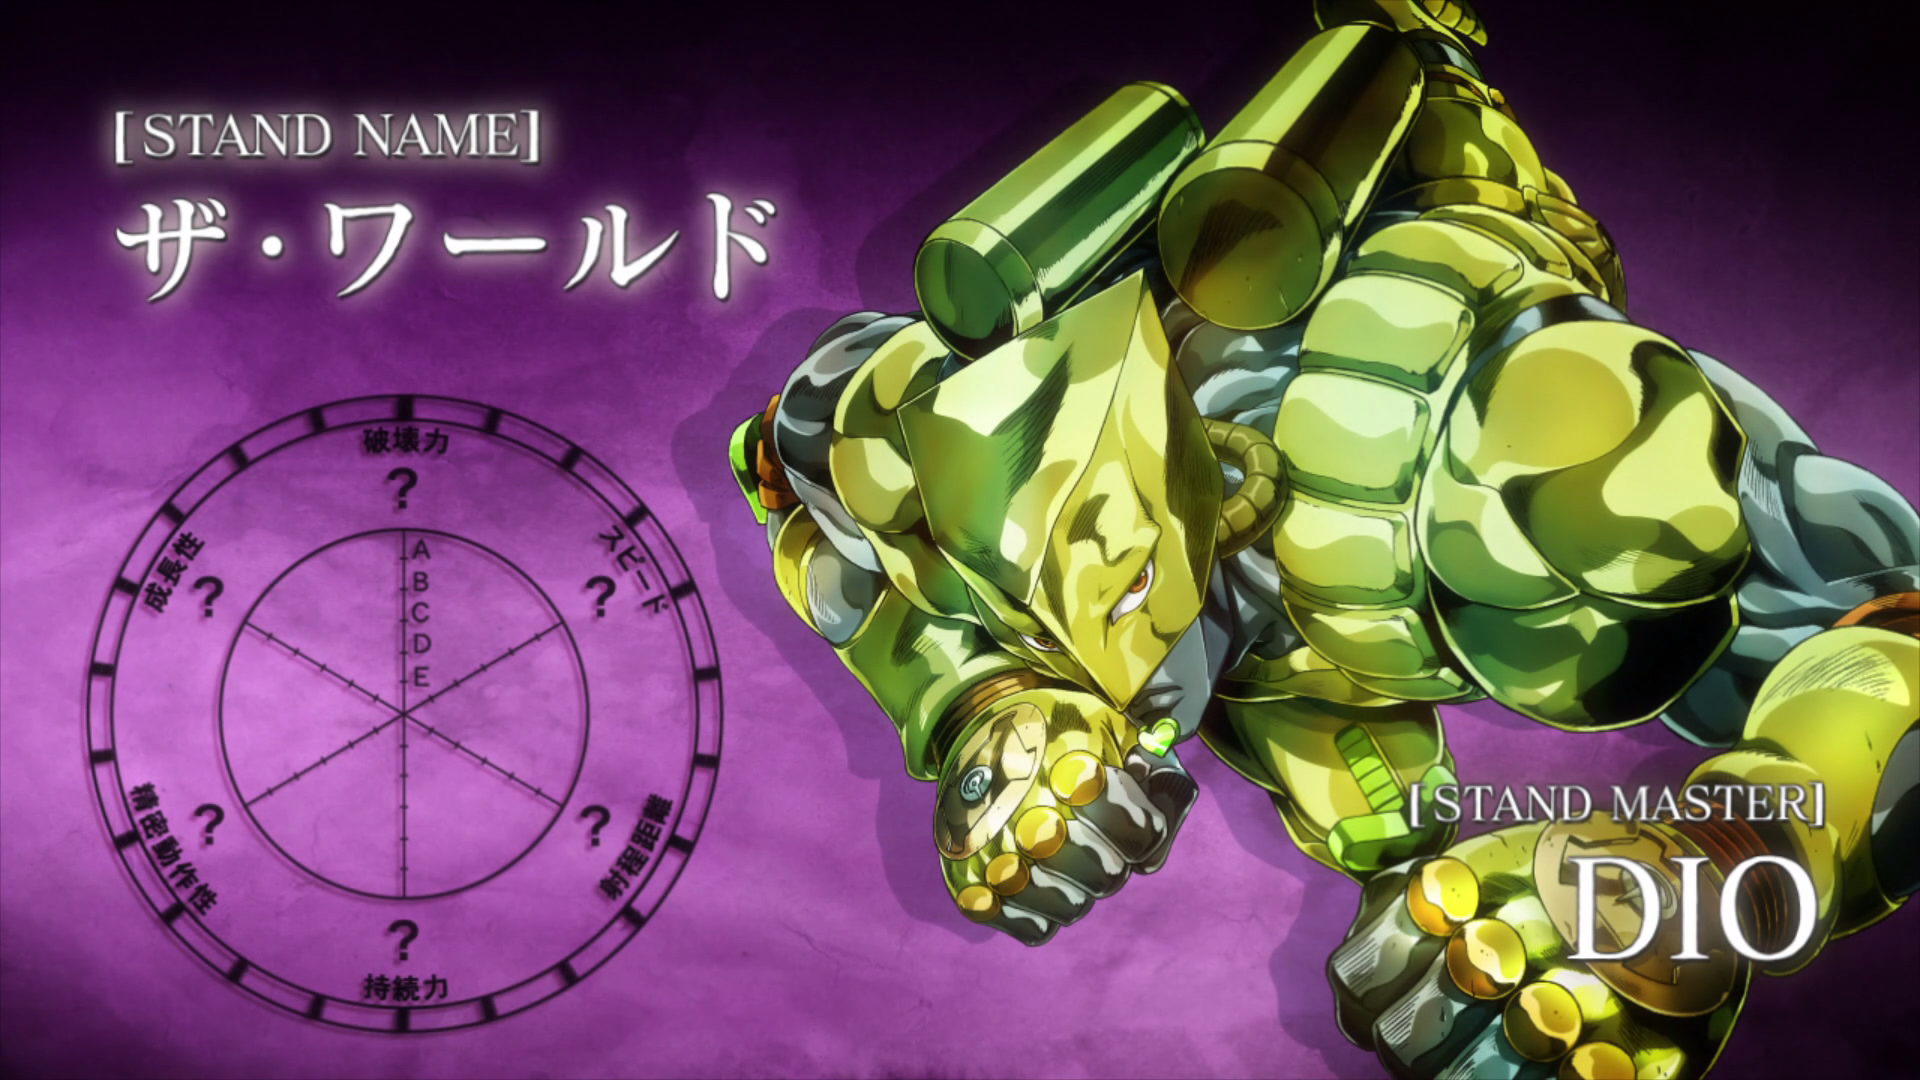 http://vignette4.wikia.nocookie.net/jjba/images/f/f7/The_World_stats.png/revision/20150605172646